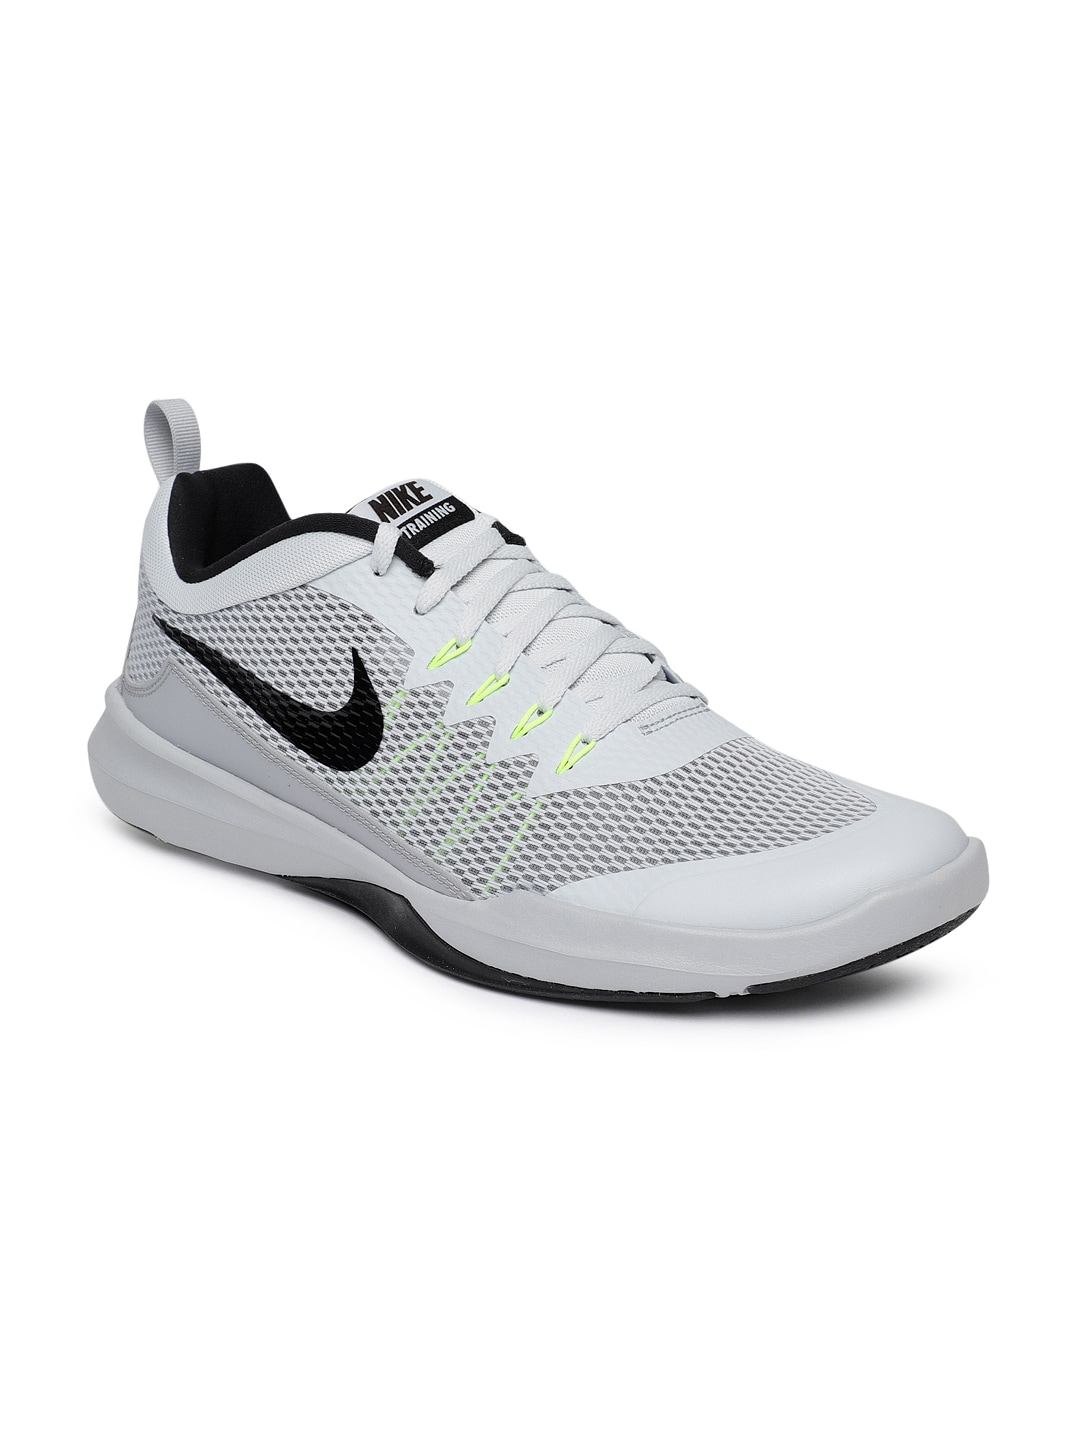 89d3d6c9334 Nike Shoes - Buy Nike Shoes for Men